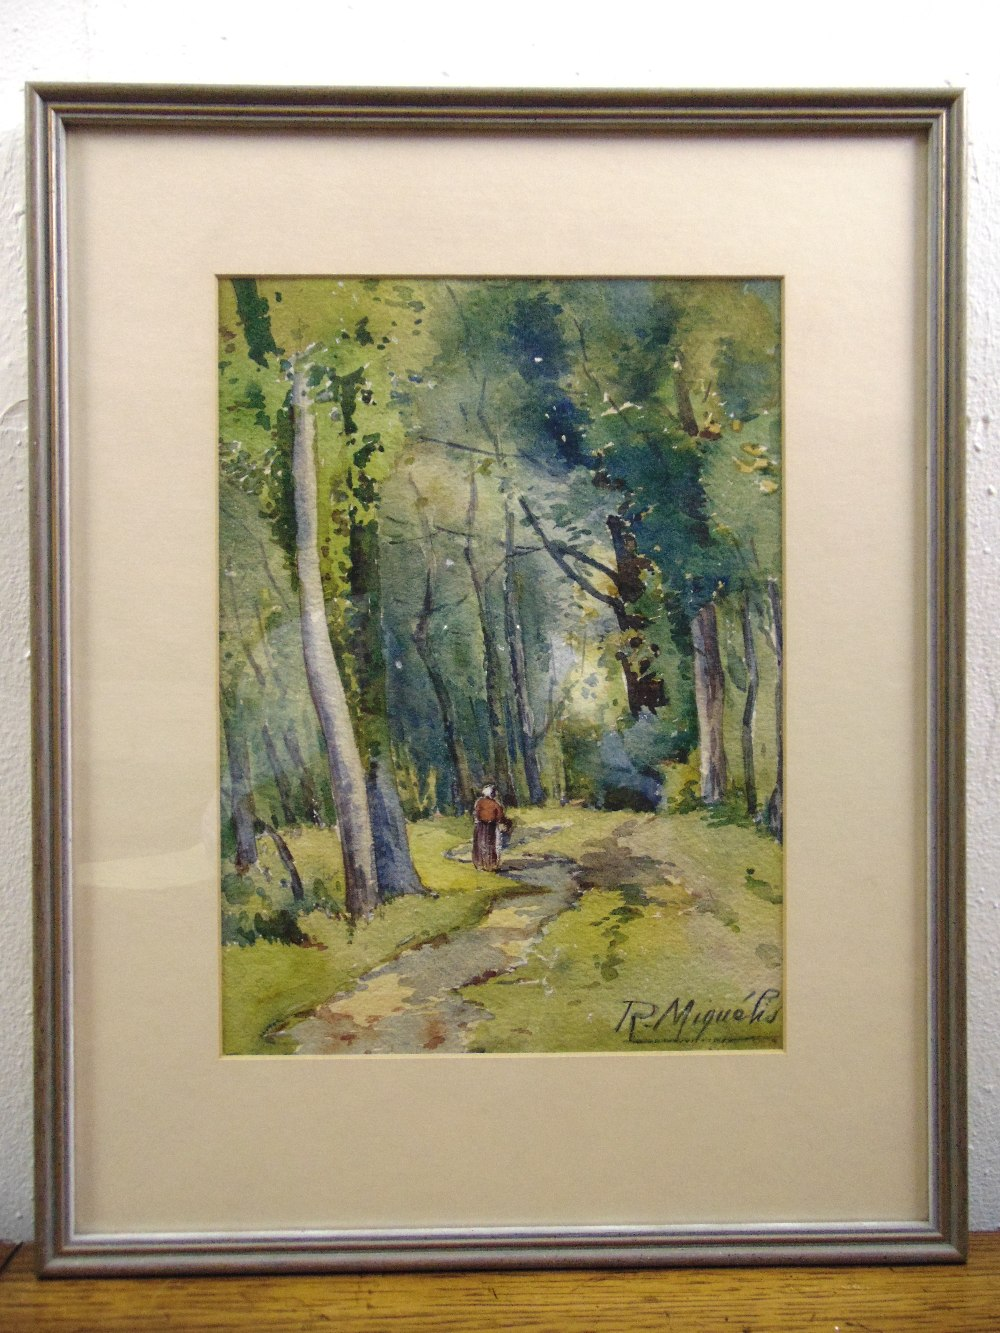 Lot 46 - R Miquels framed and glazed watercolour of a figure on a country path, 27.5 x 20cm